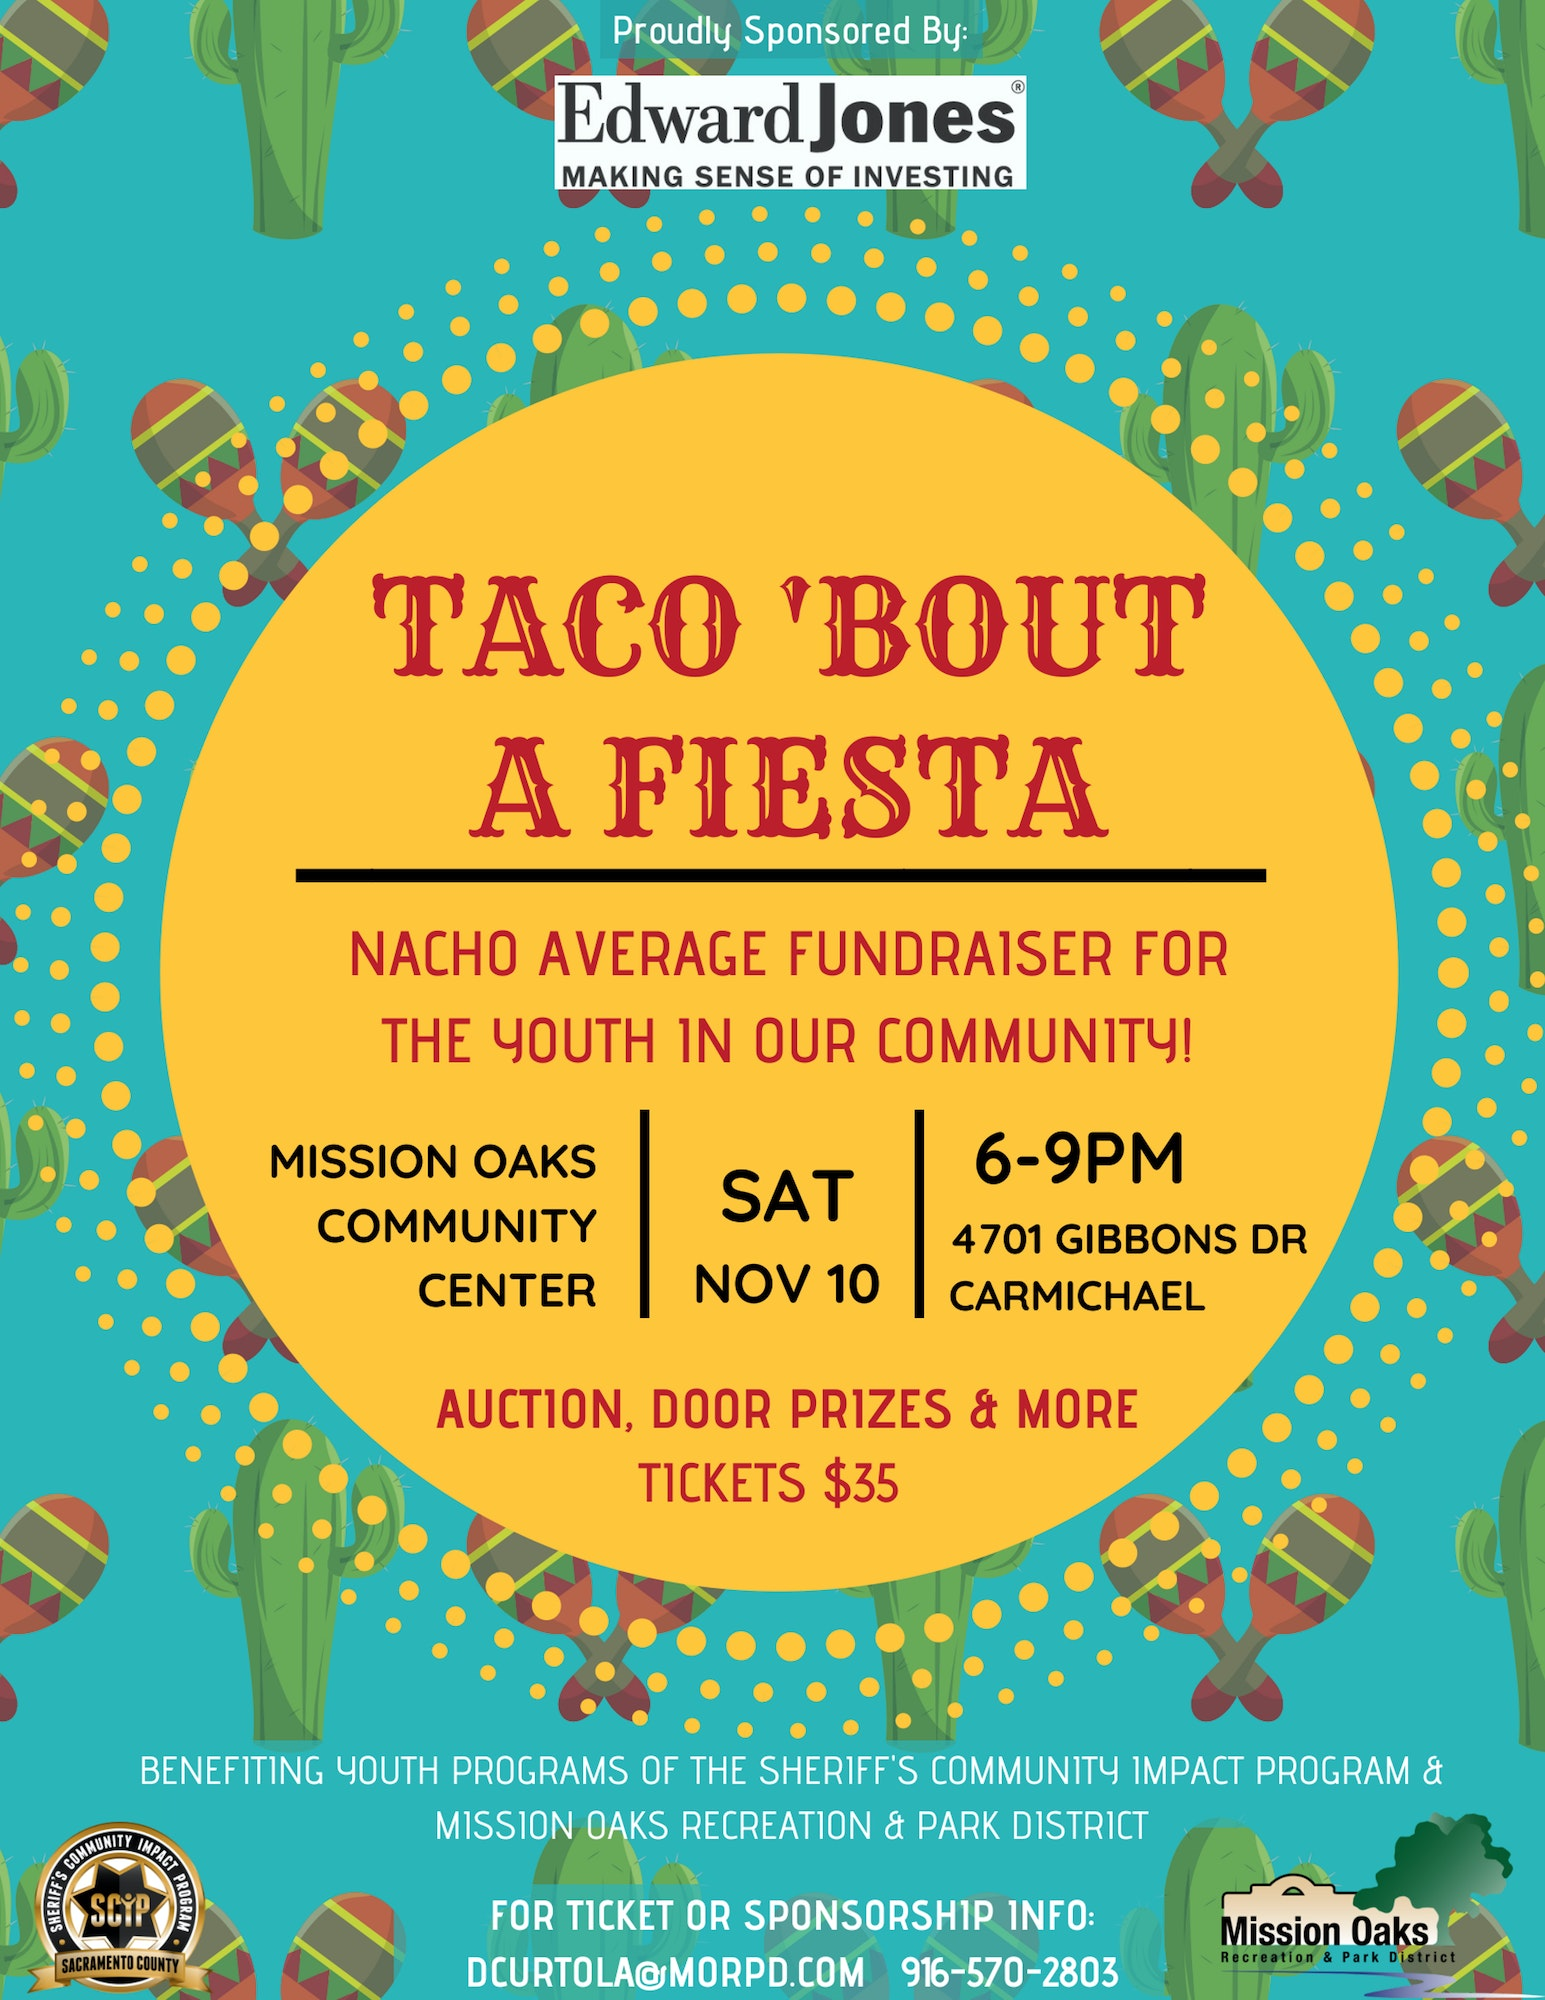 taco bout a fiesta mission oaks recreation park district